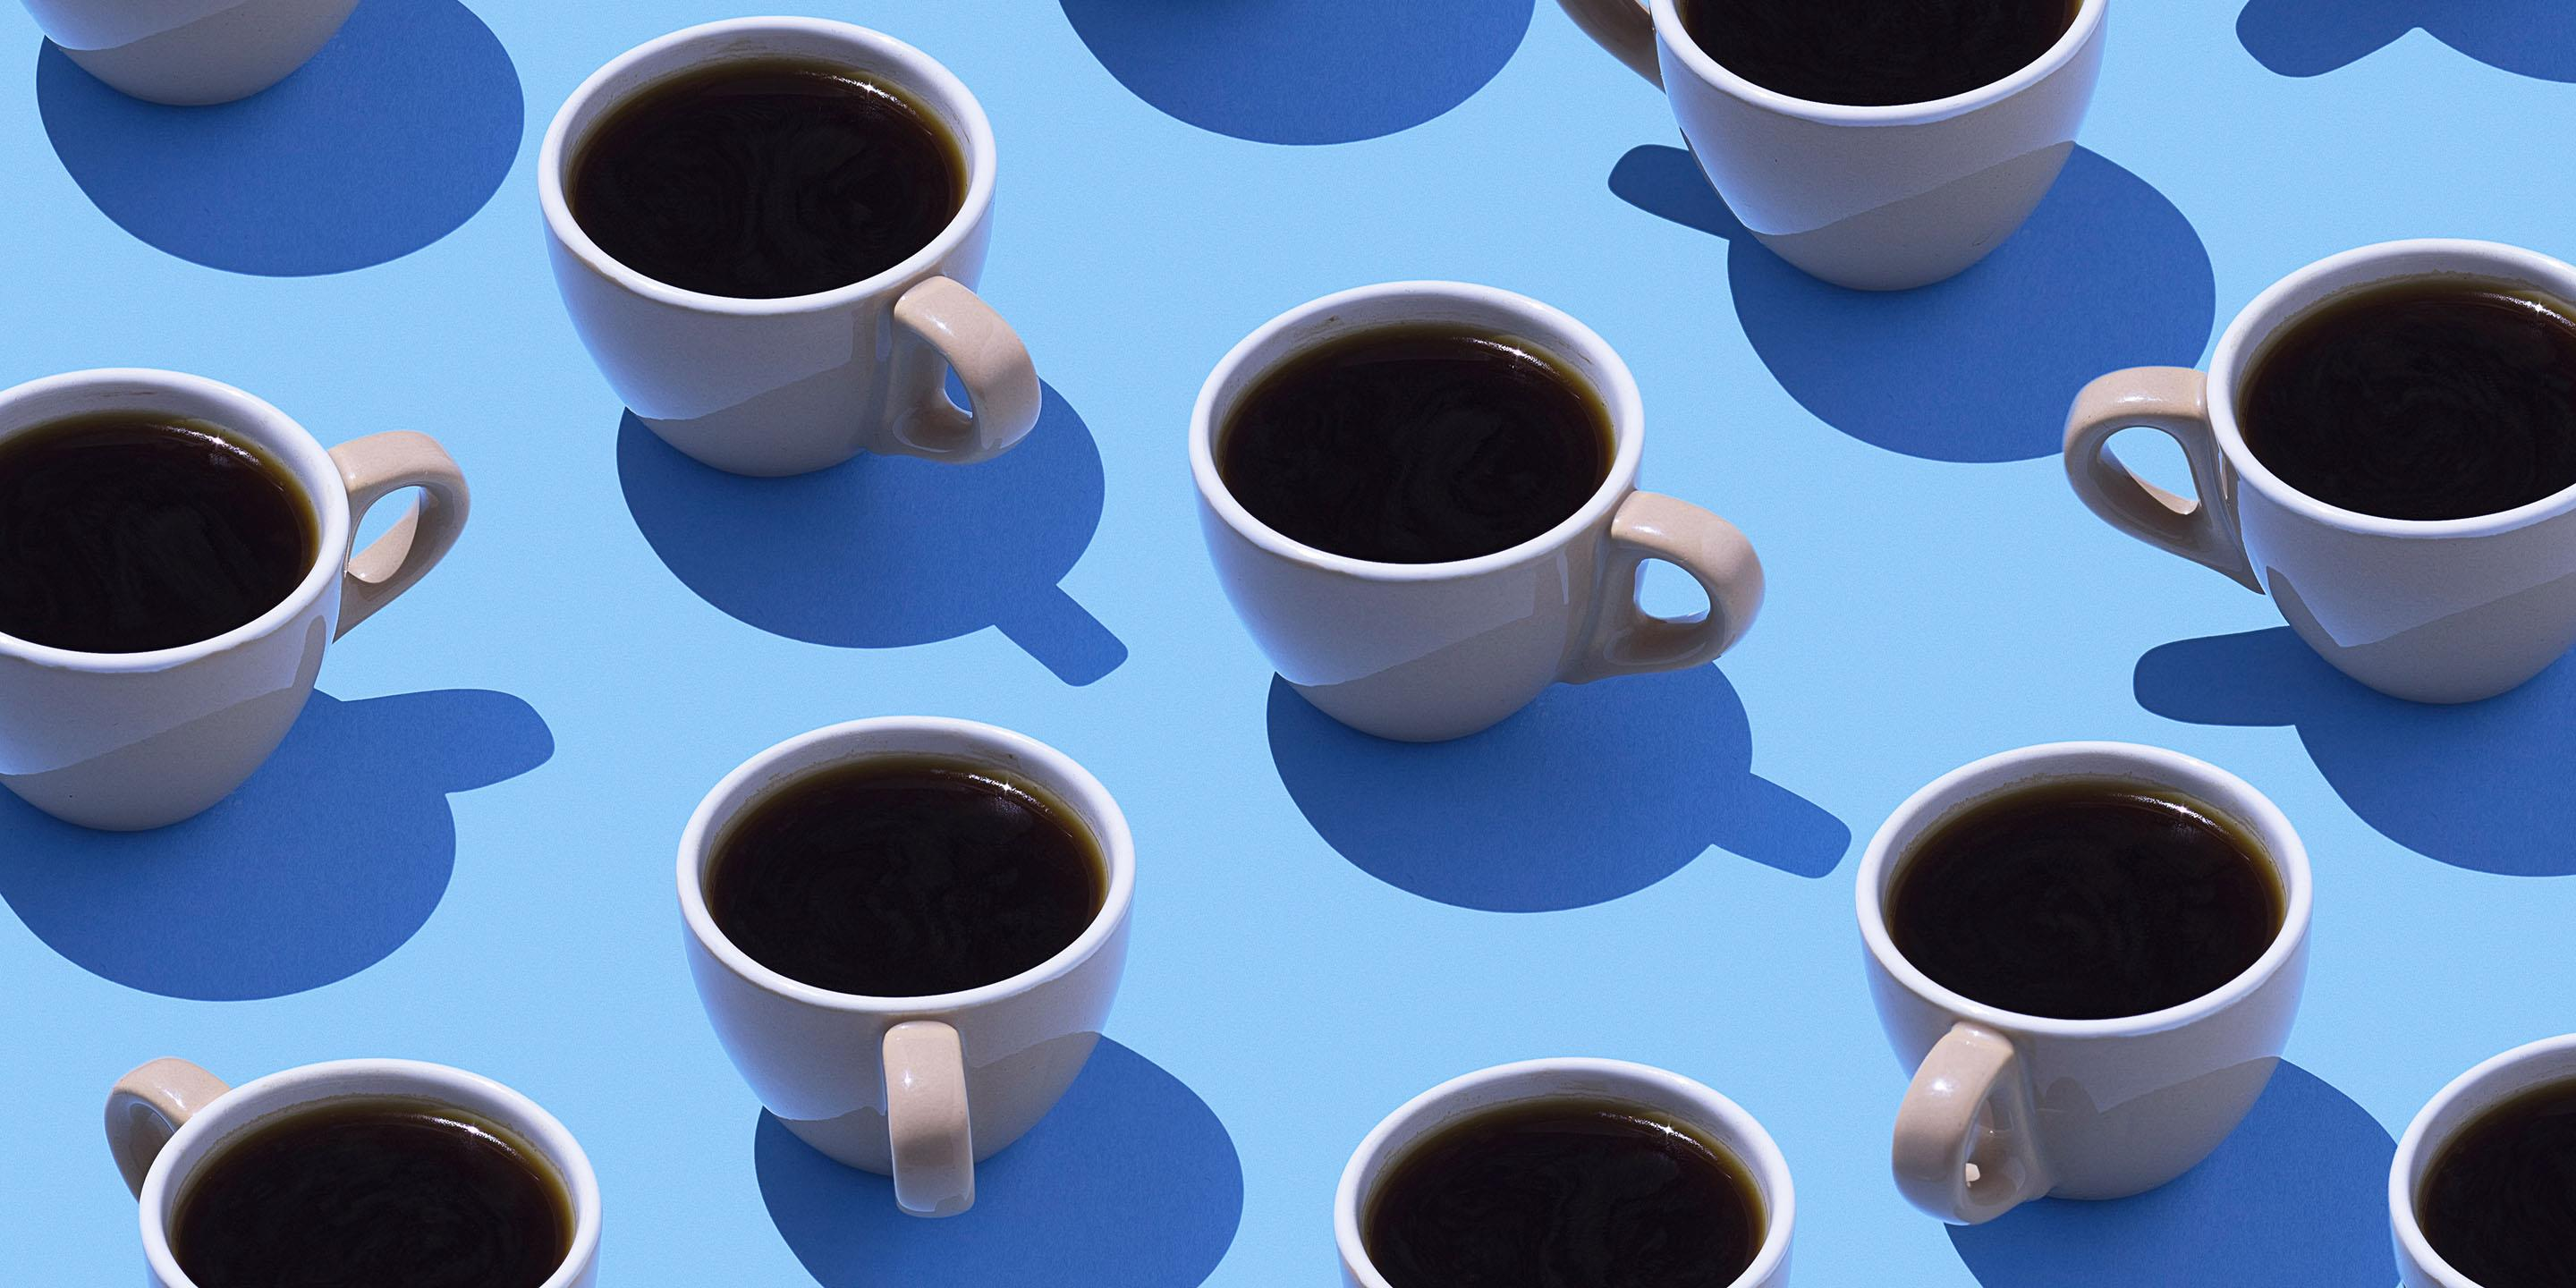 Is caffeine bad for pregnancy? - Furthermore